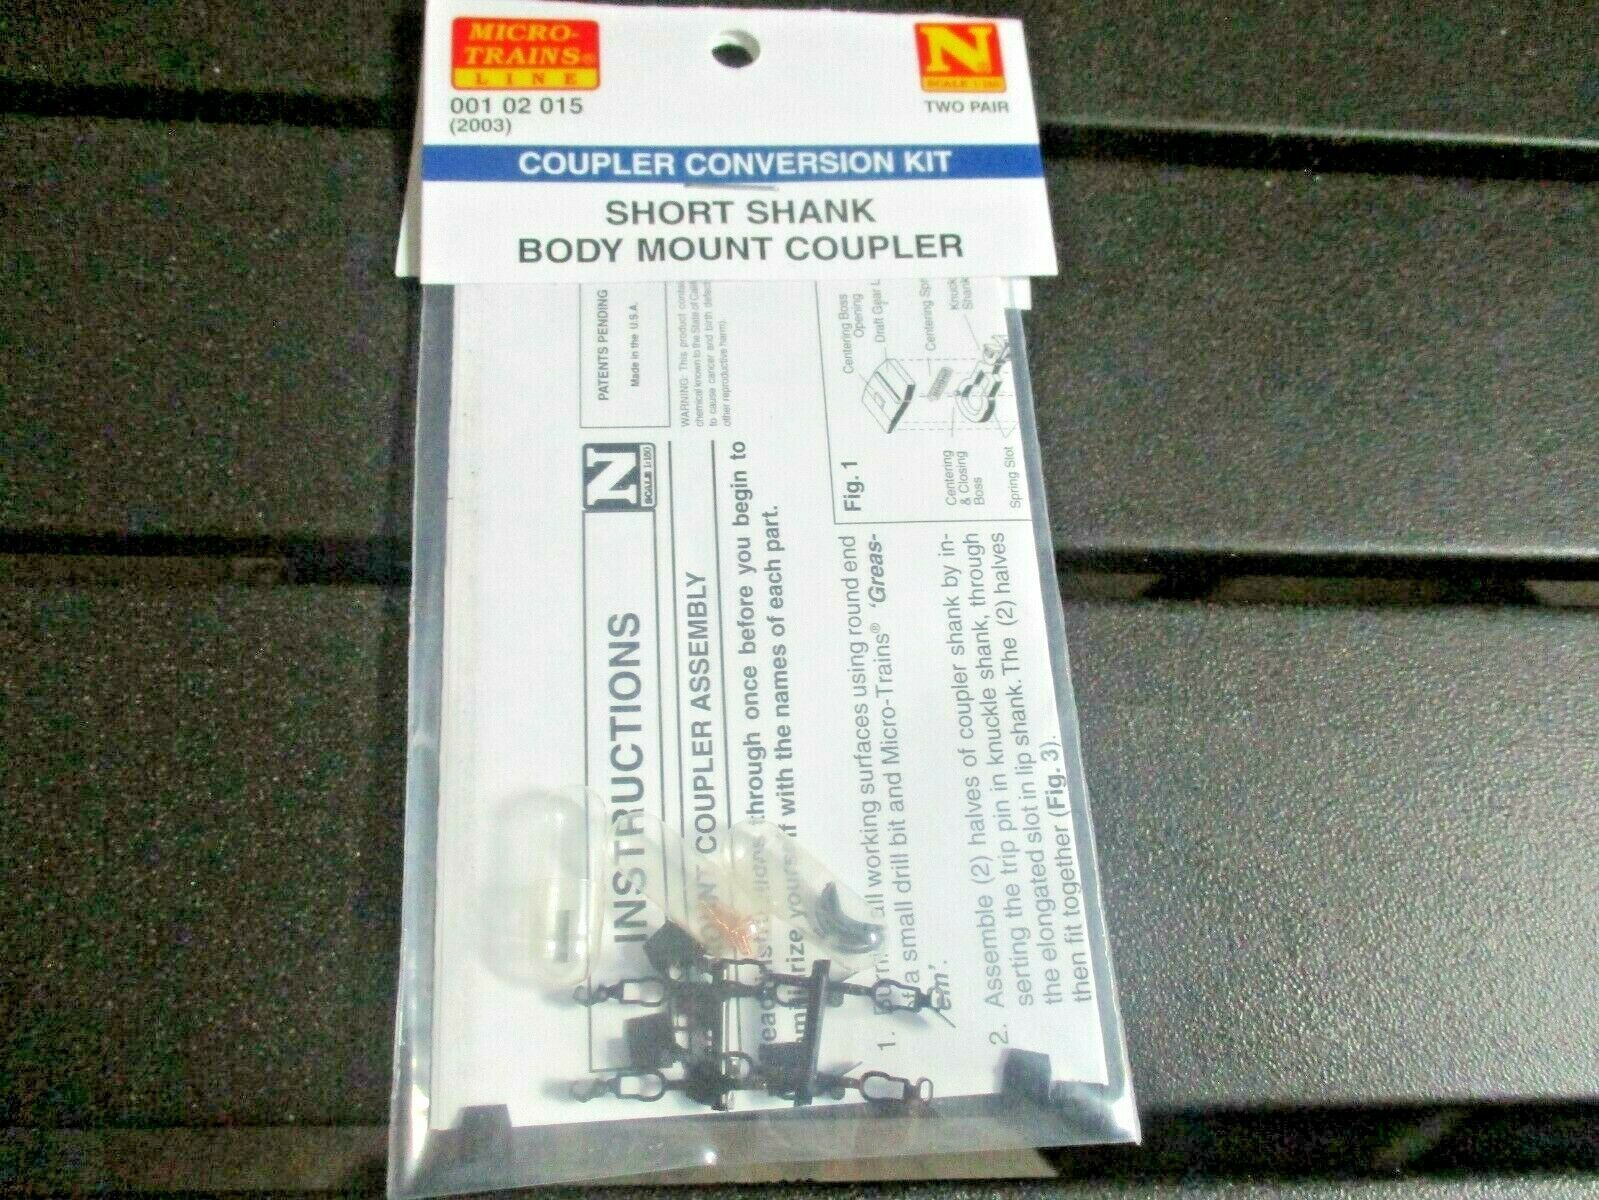 Micro-Trains Stock # 00102015 (Short Shank Body Mount Couplers 2 Pair N-Scale